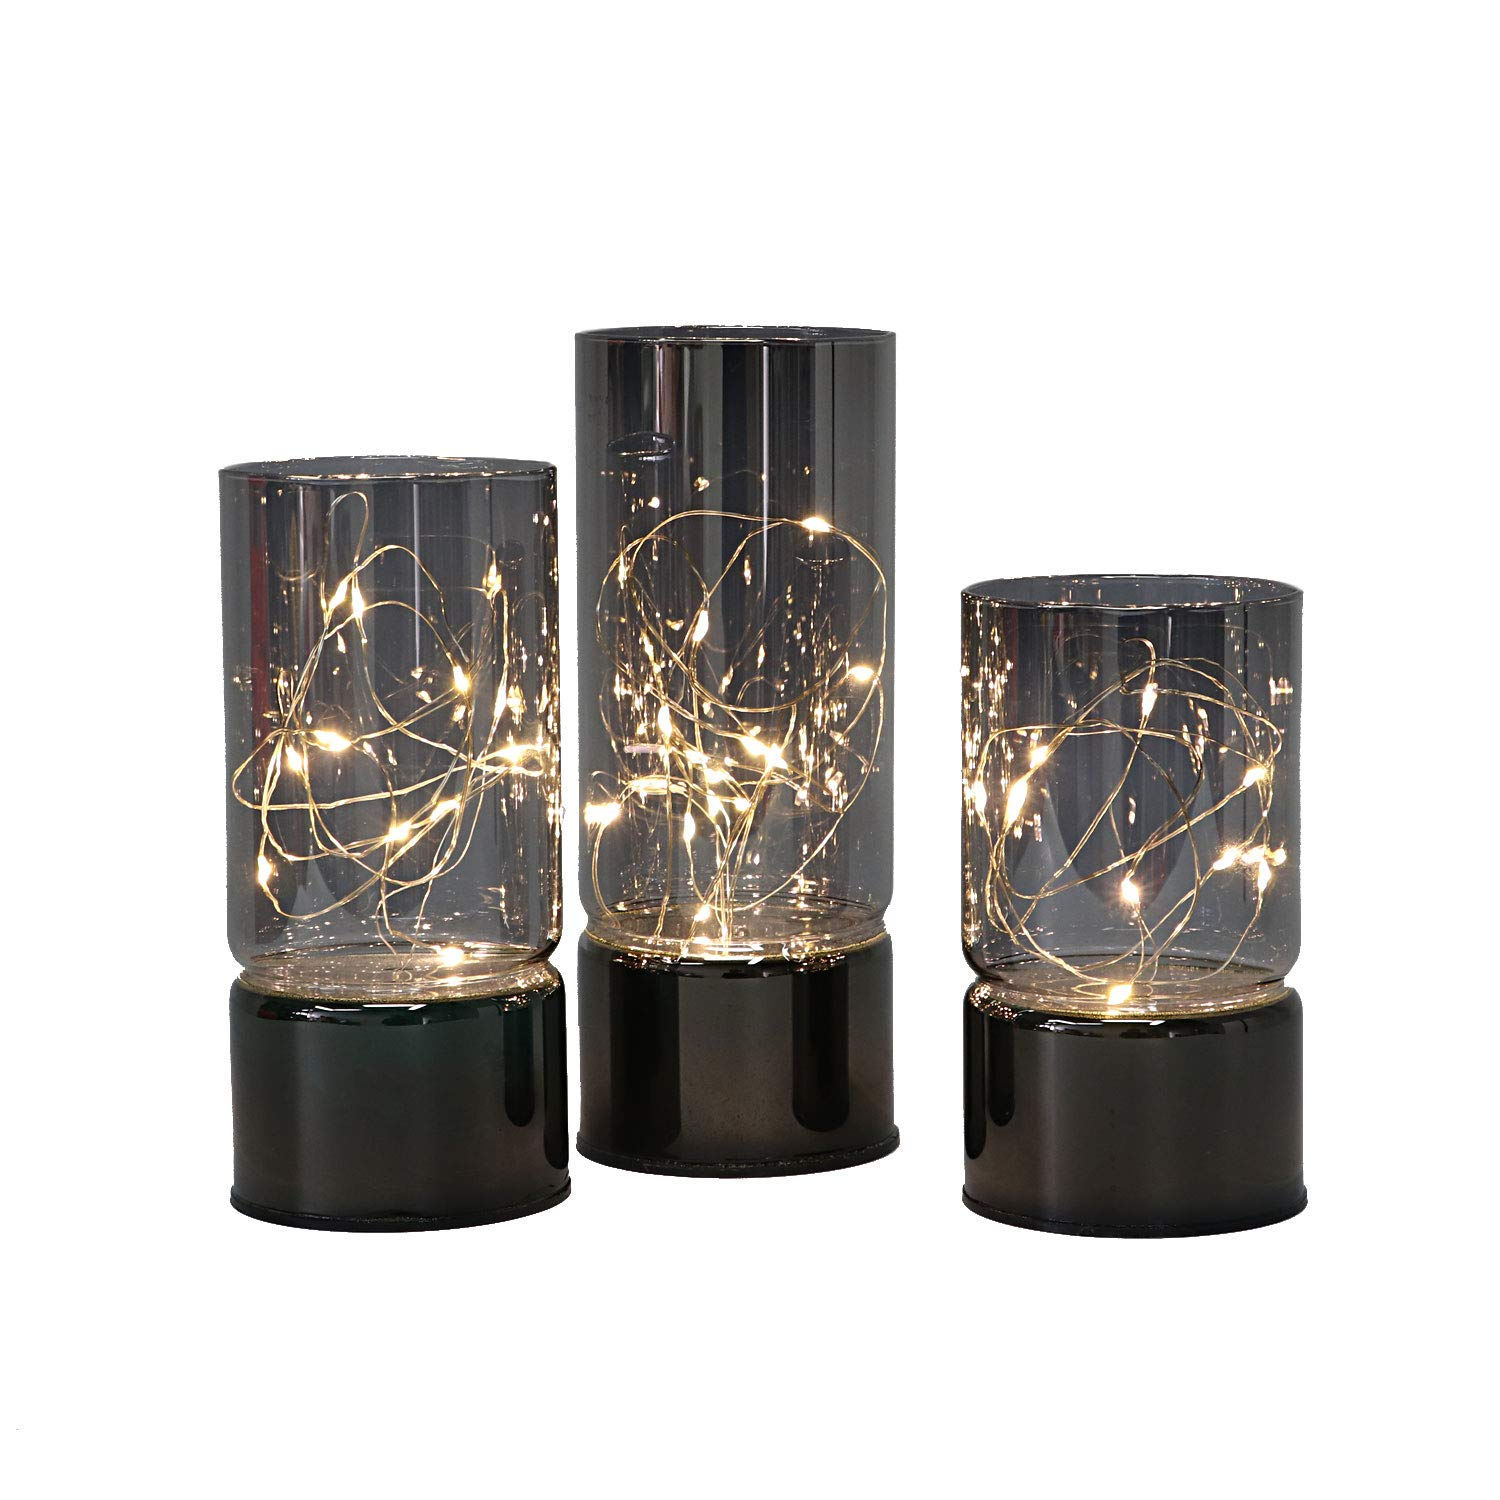 Rhytsing Set of 3 Glass Cylinder Lanterns with Fairy Lights, Battery Operated Candles with Timer Function